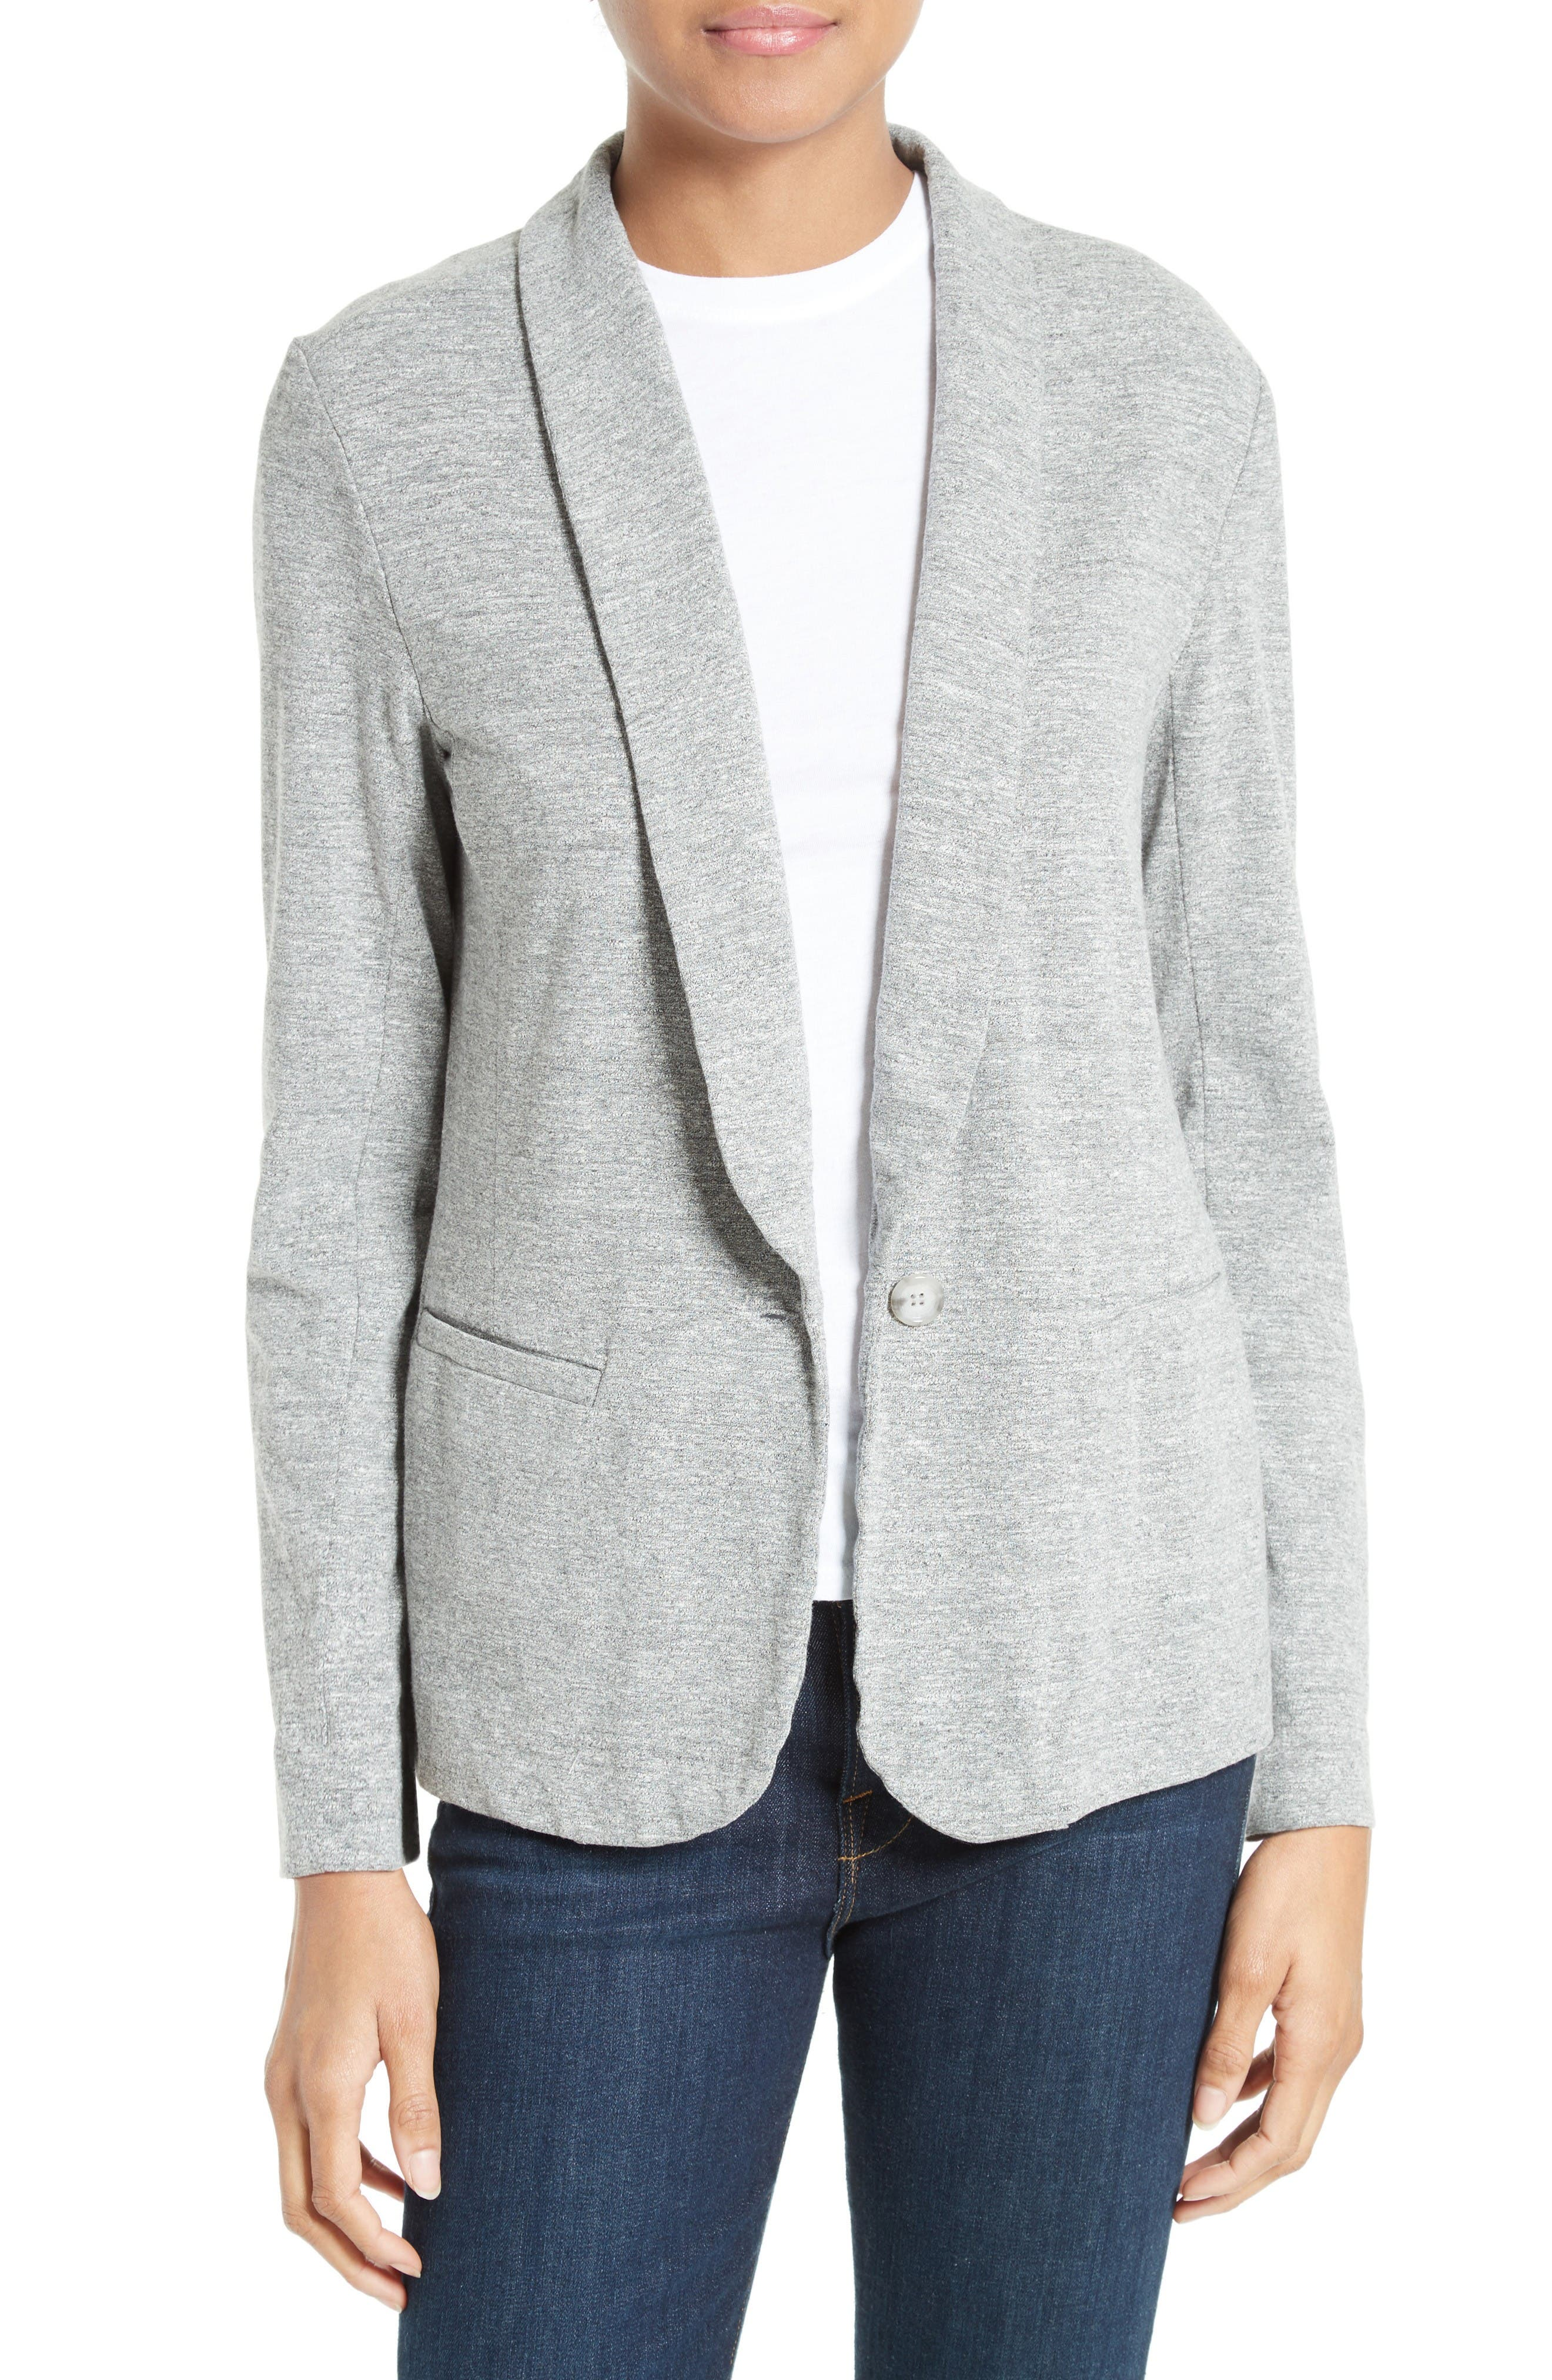 Soft Joie Korrolina Jersey One-Button Jacket